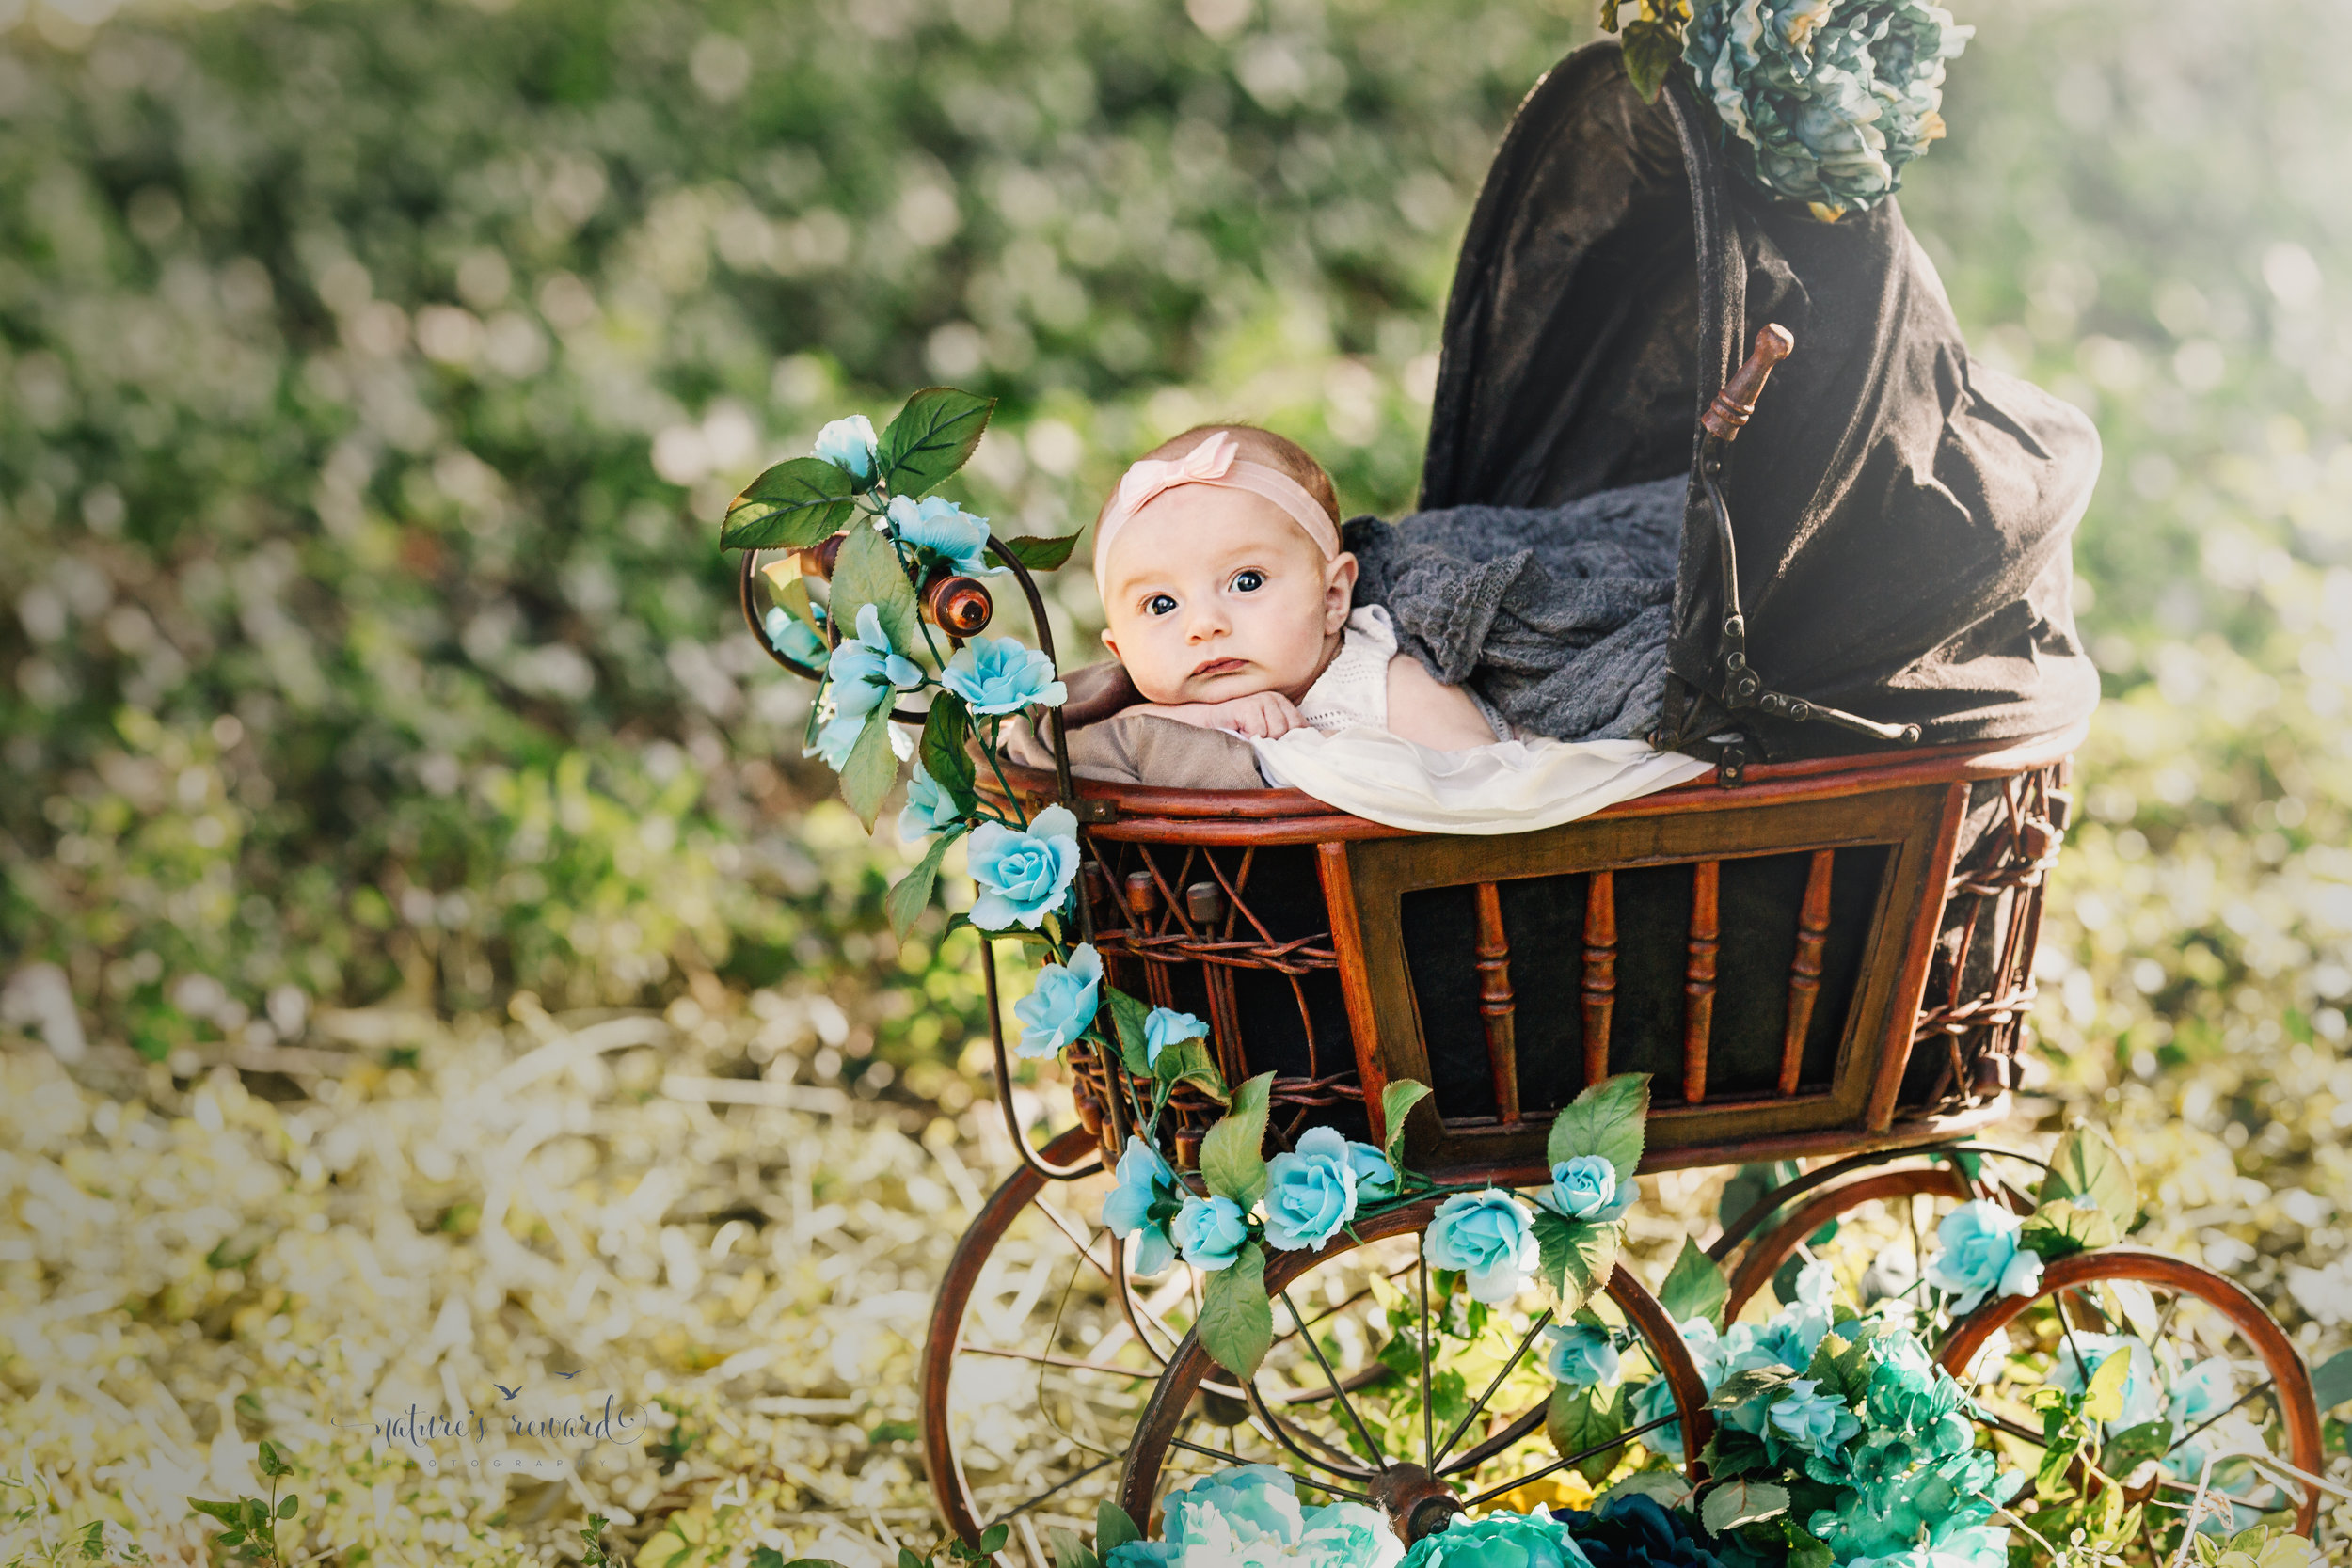 Three (3) month old baby girl in a white dress and pink hair band lays dreamingly in an anitque doll carriage in the beautiful setting sunlight in park setting in this portrait by Nature's Reward Photography.